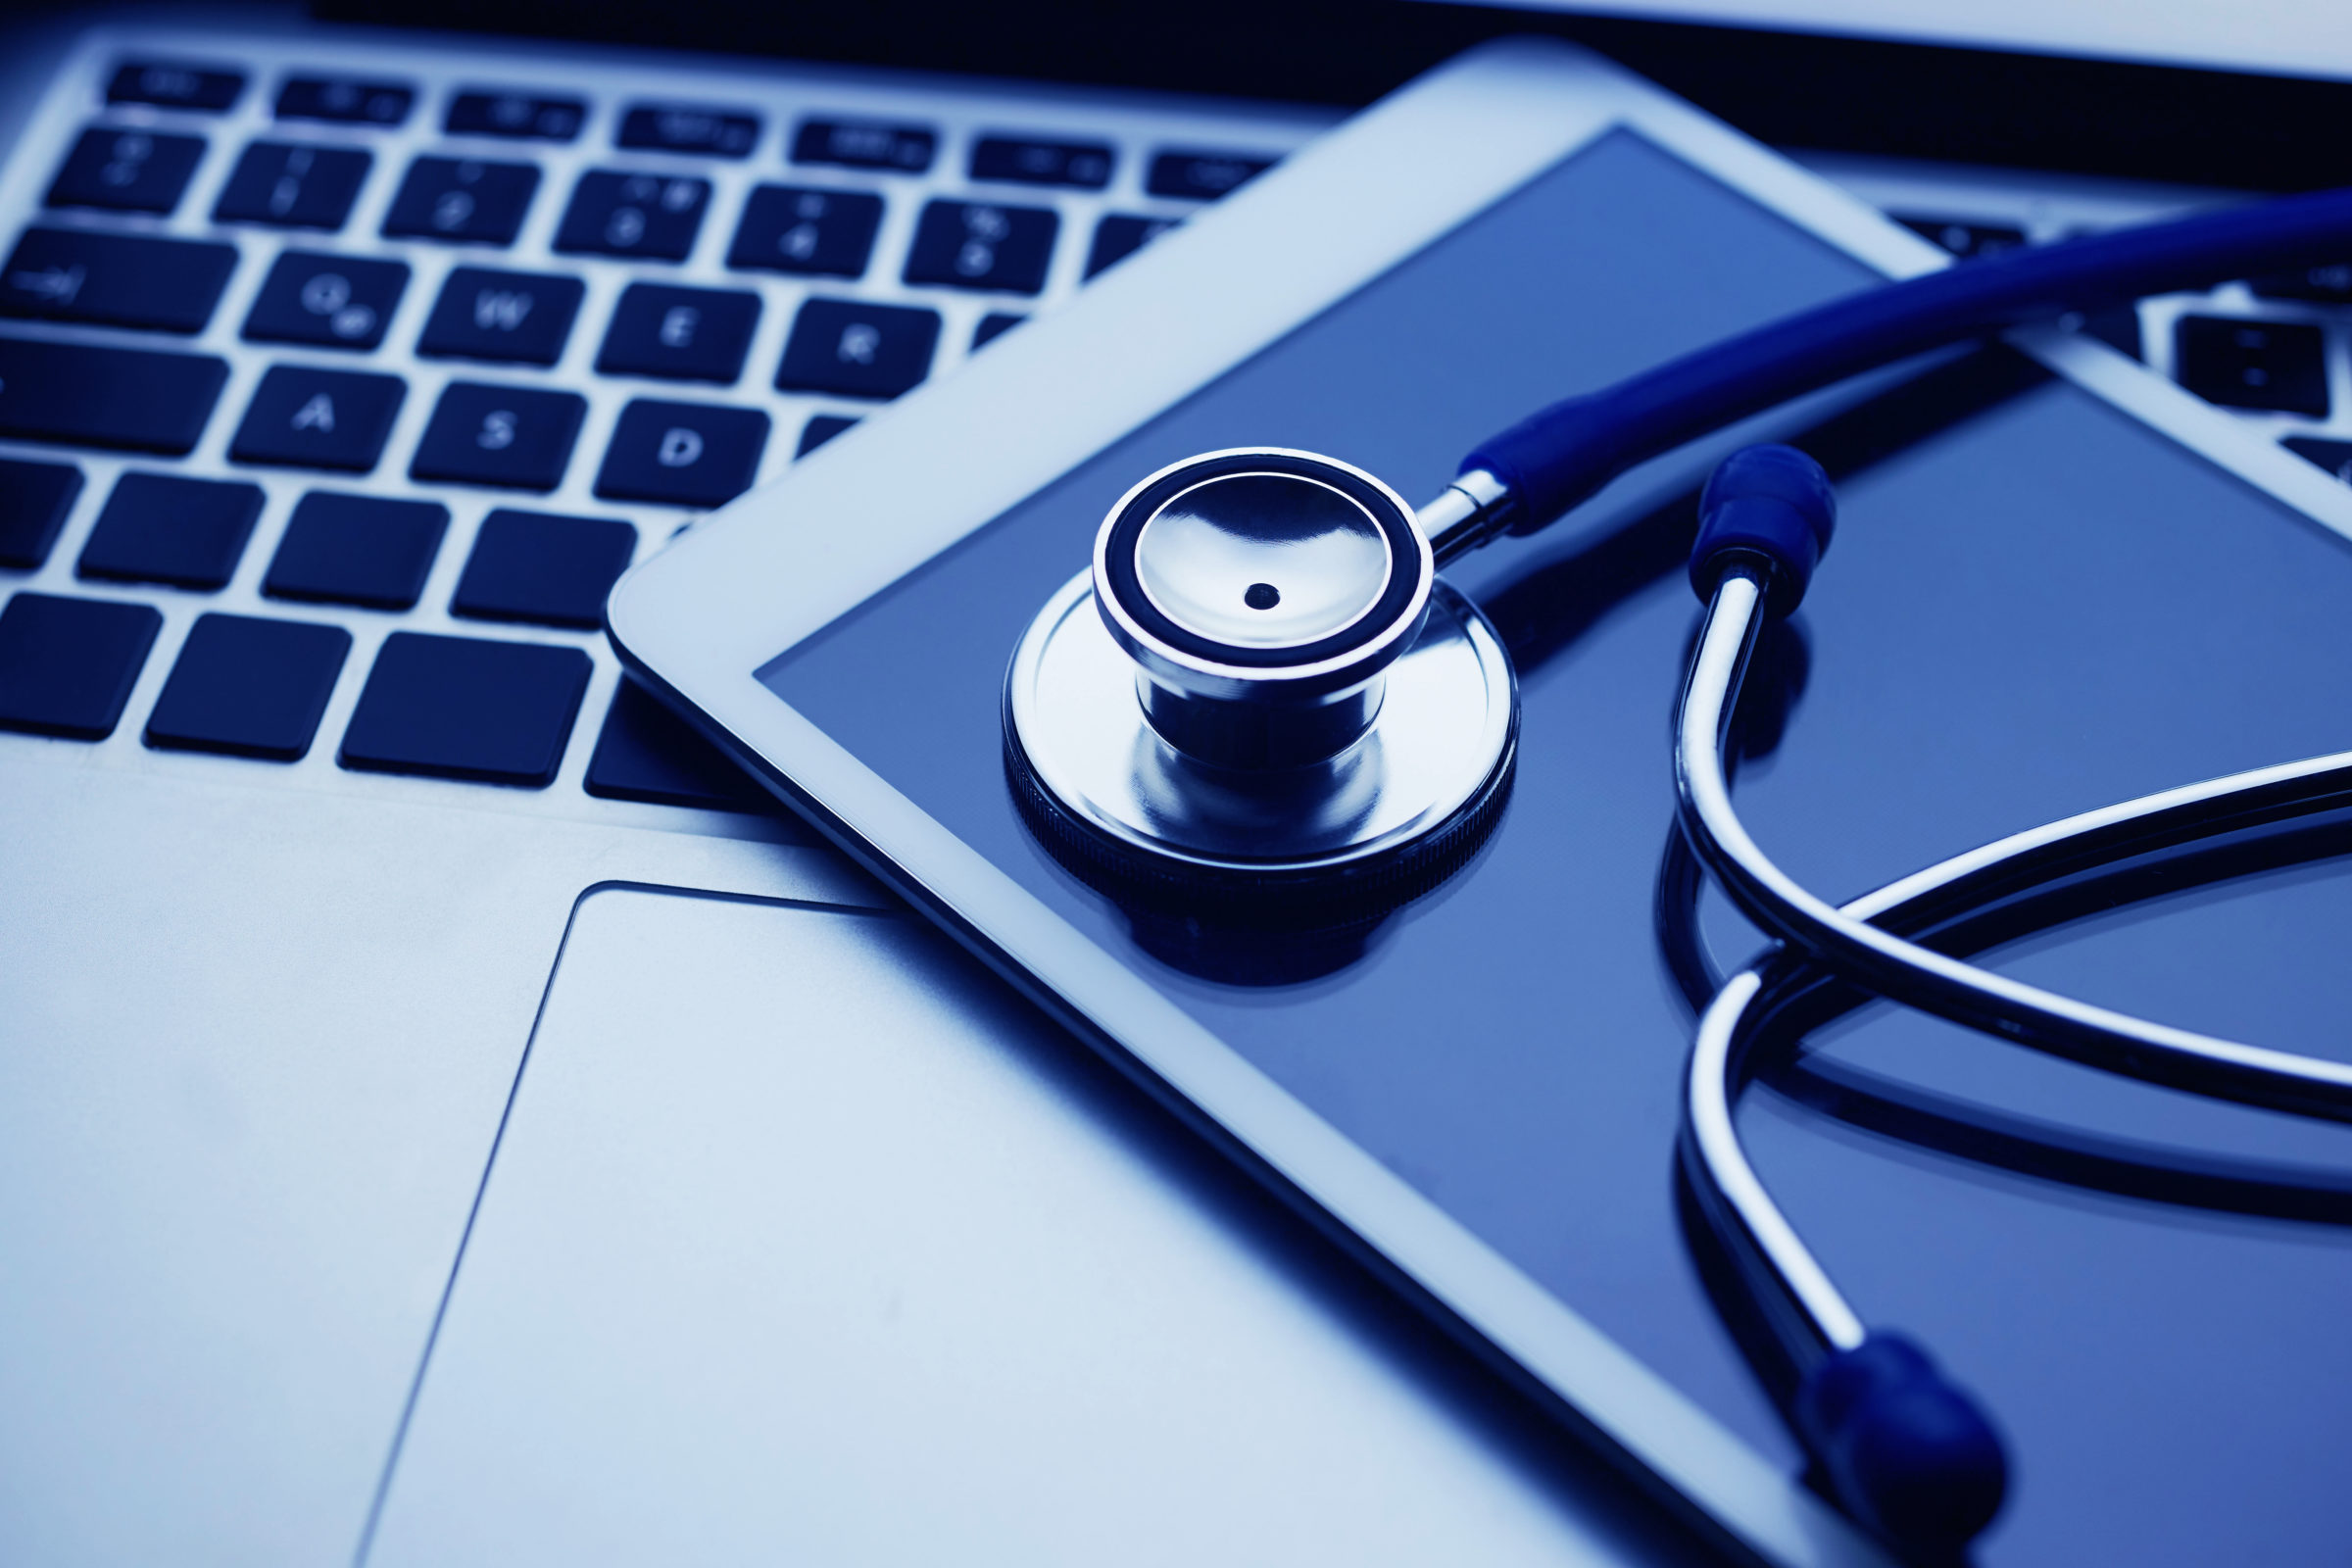 Health Professions Education featured image background